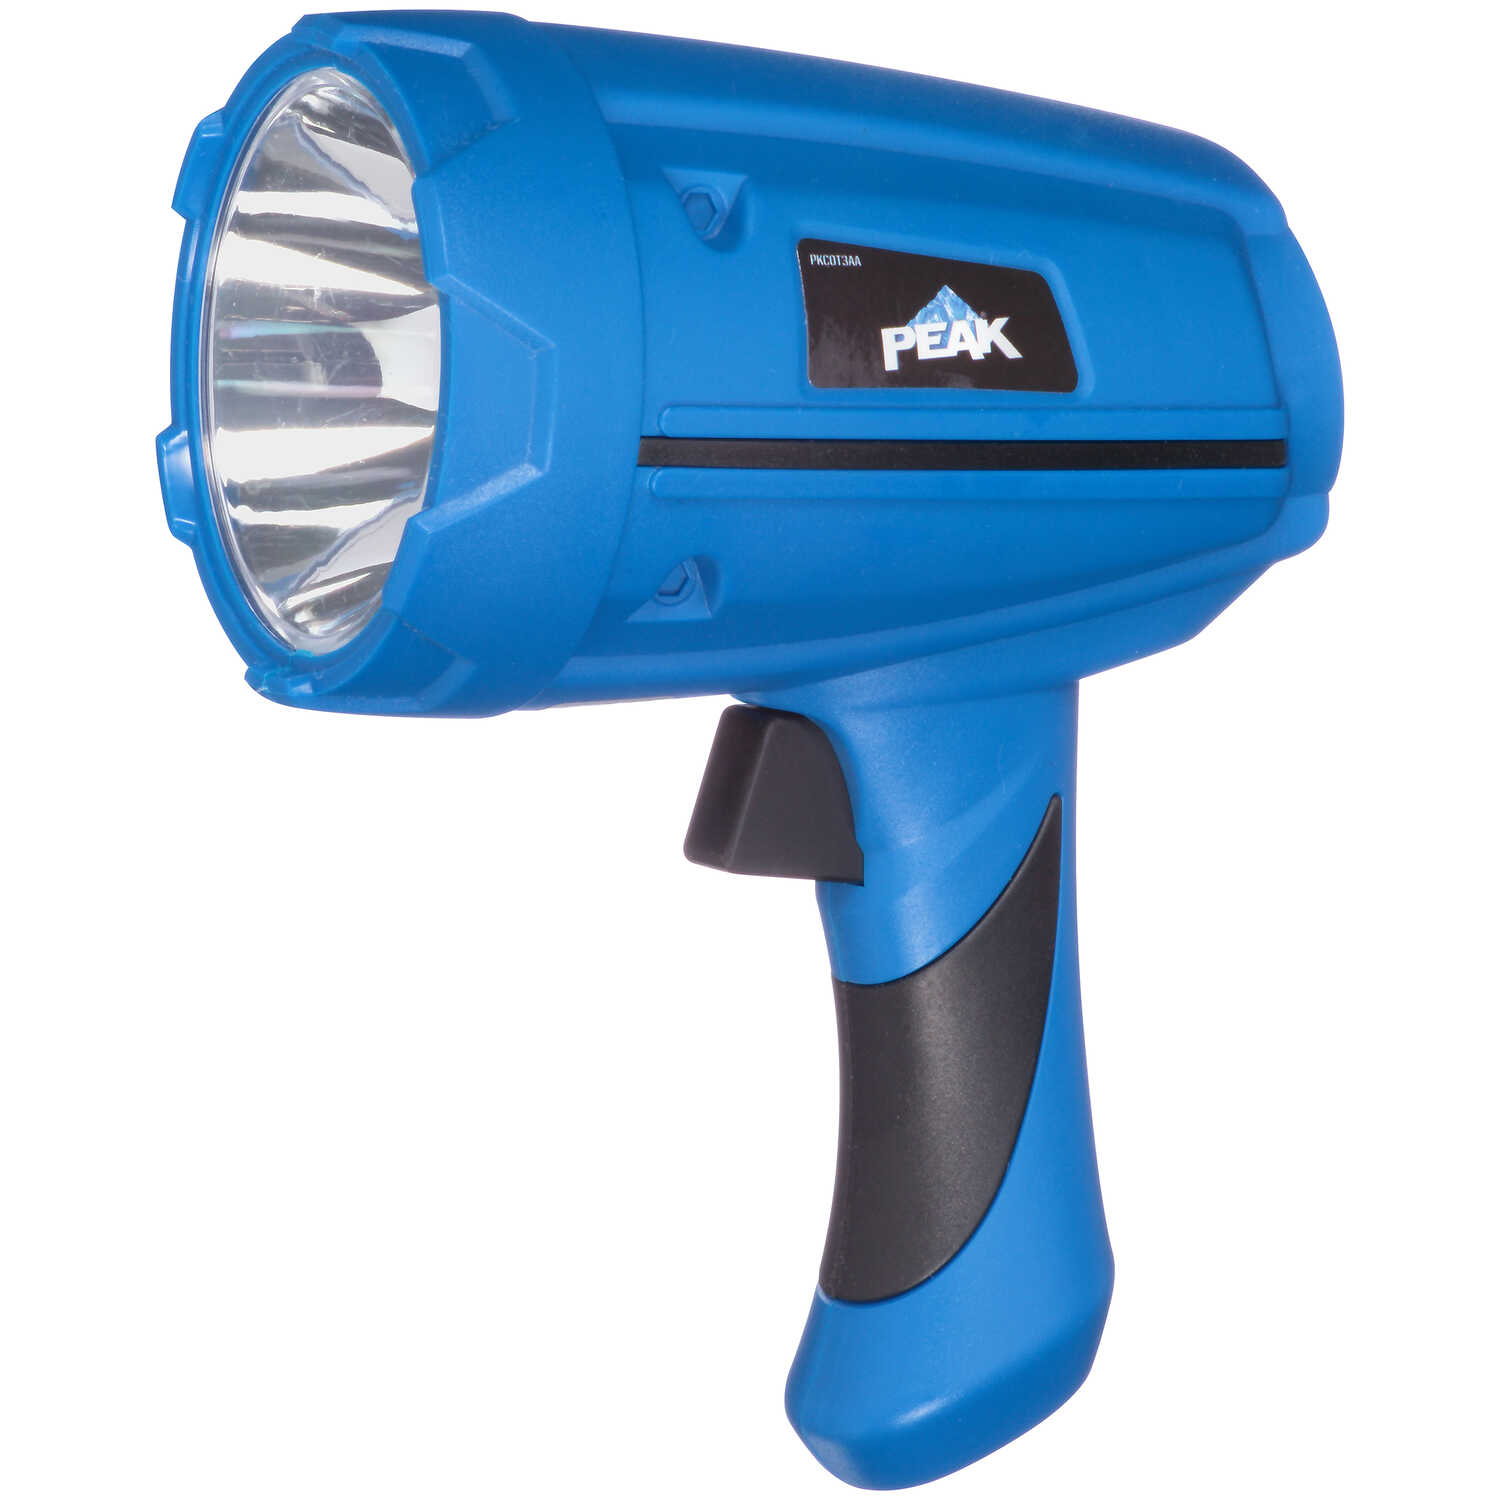 Peak  Rechargeable Led Spotlight